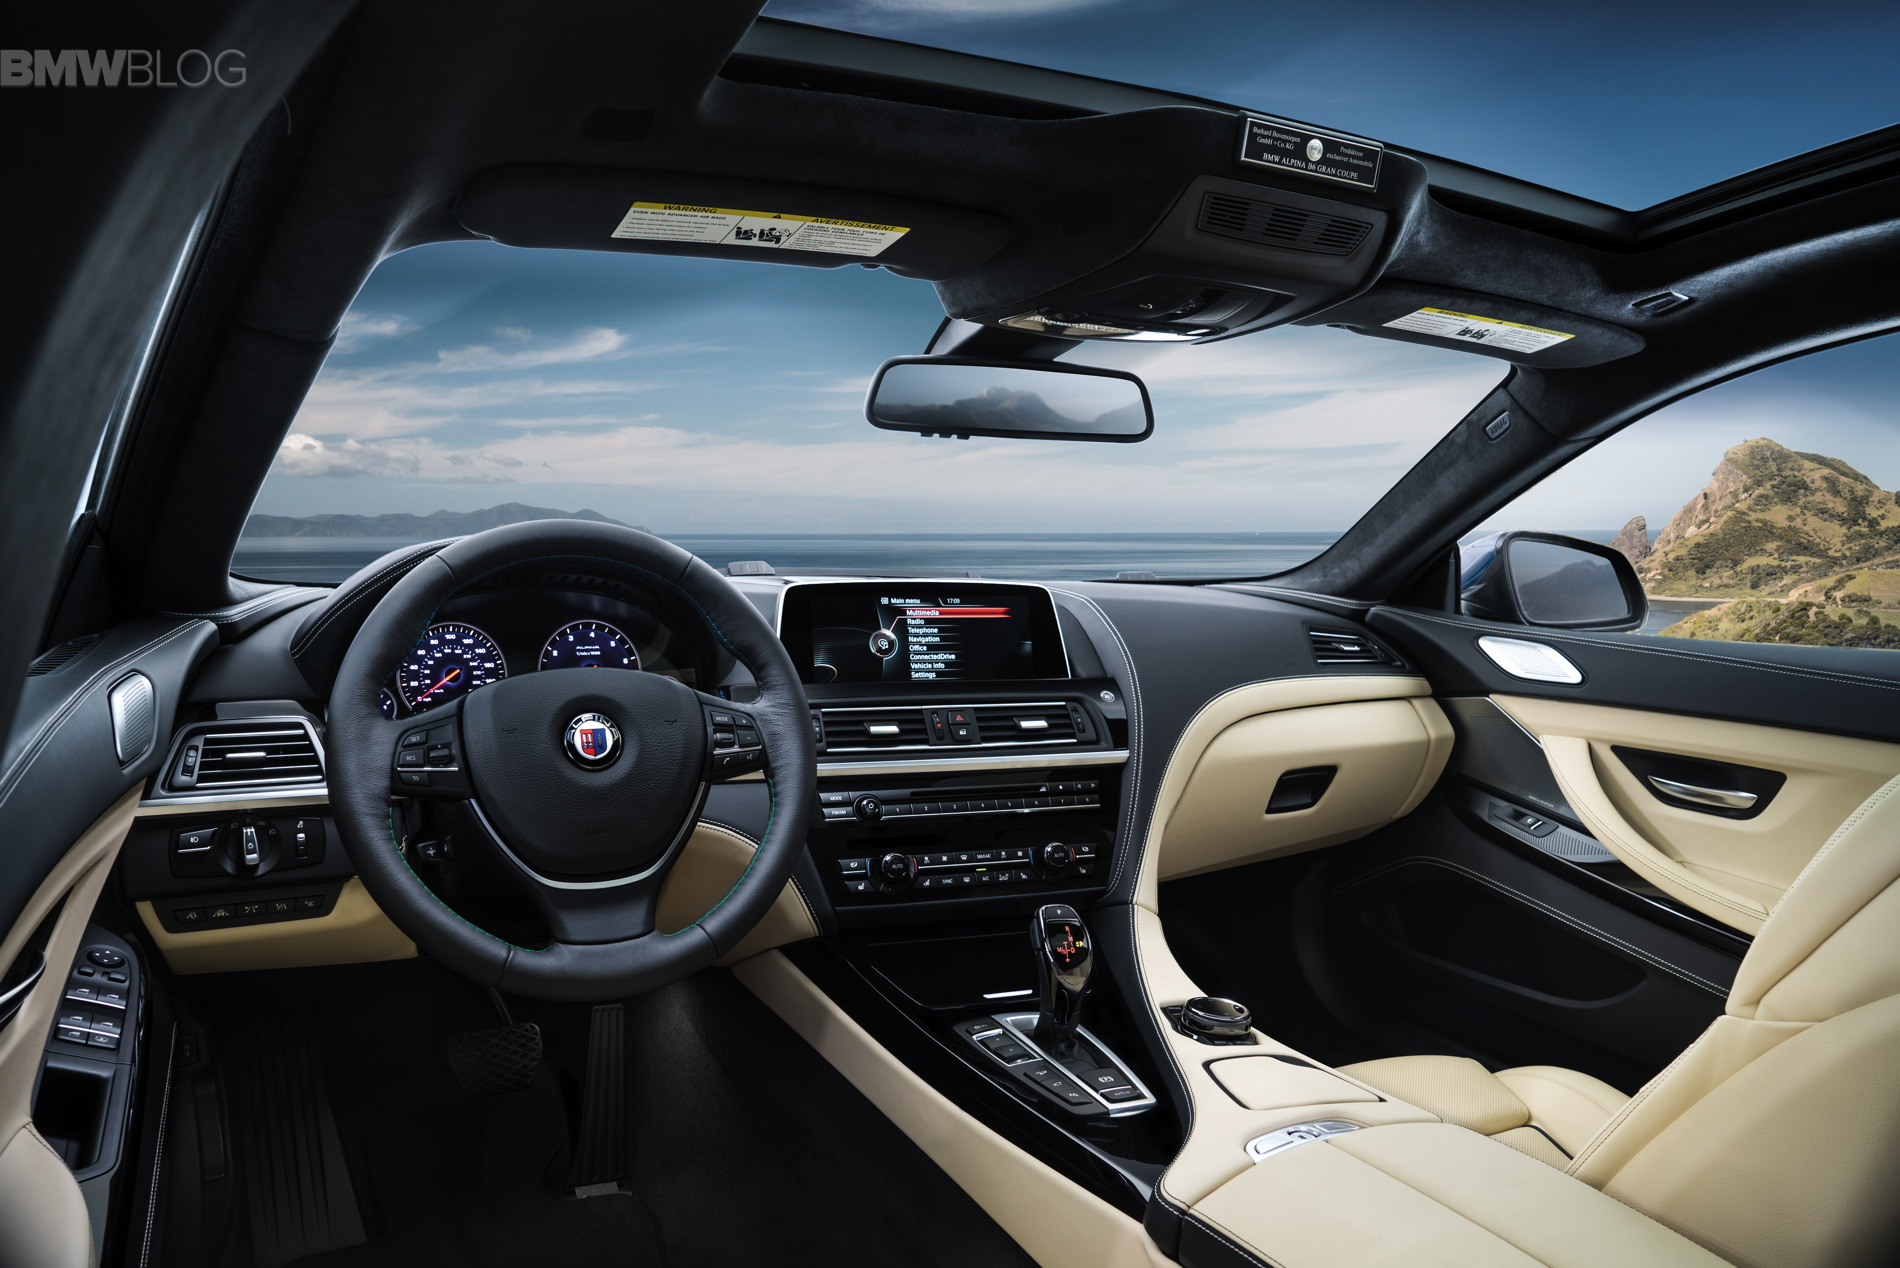 2016 Bmw Alpina B6 Xdrive Gran Coupe Images